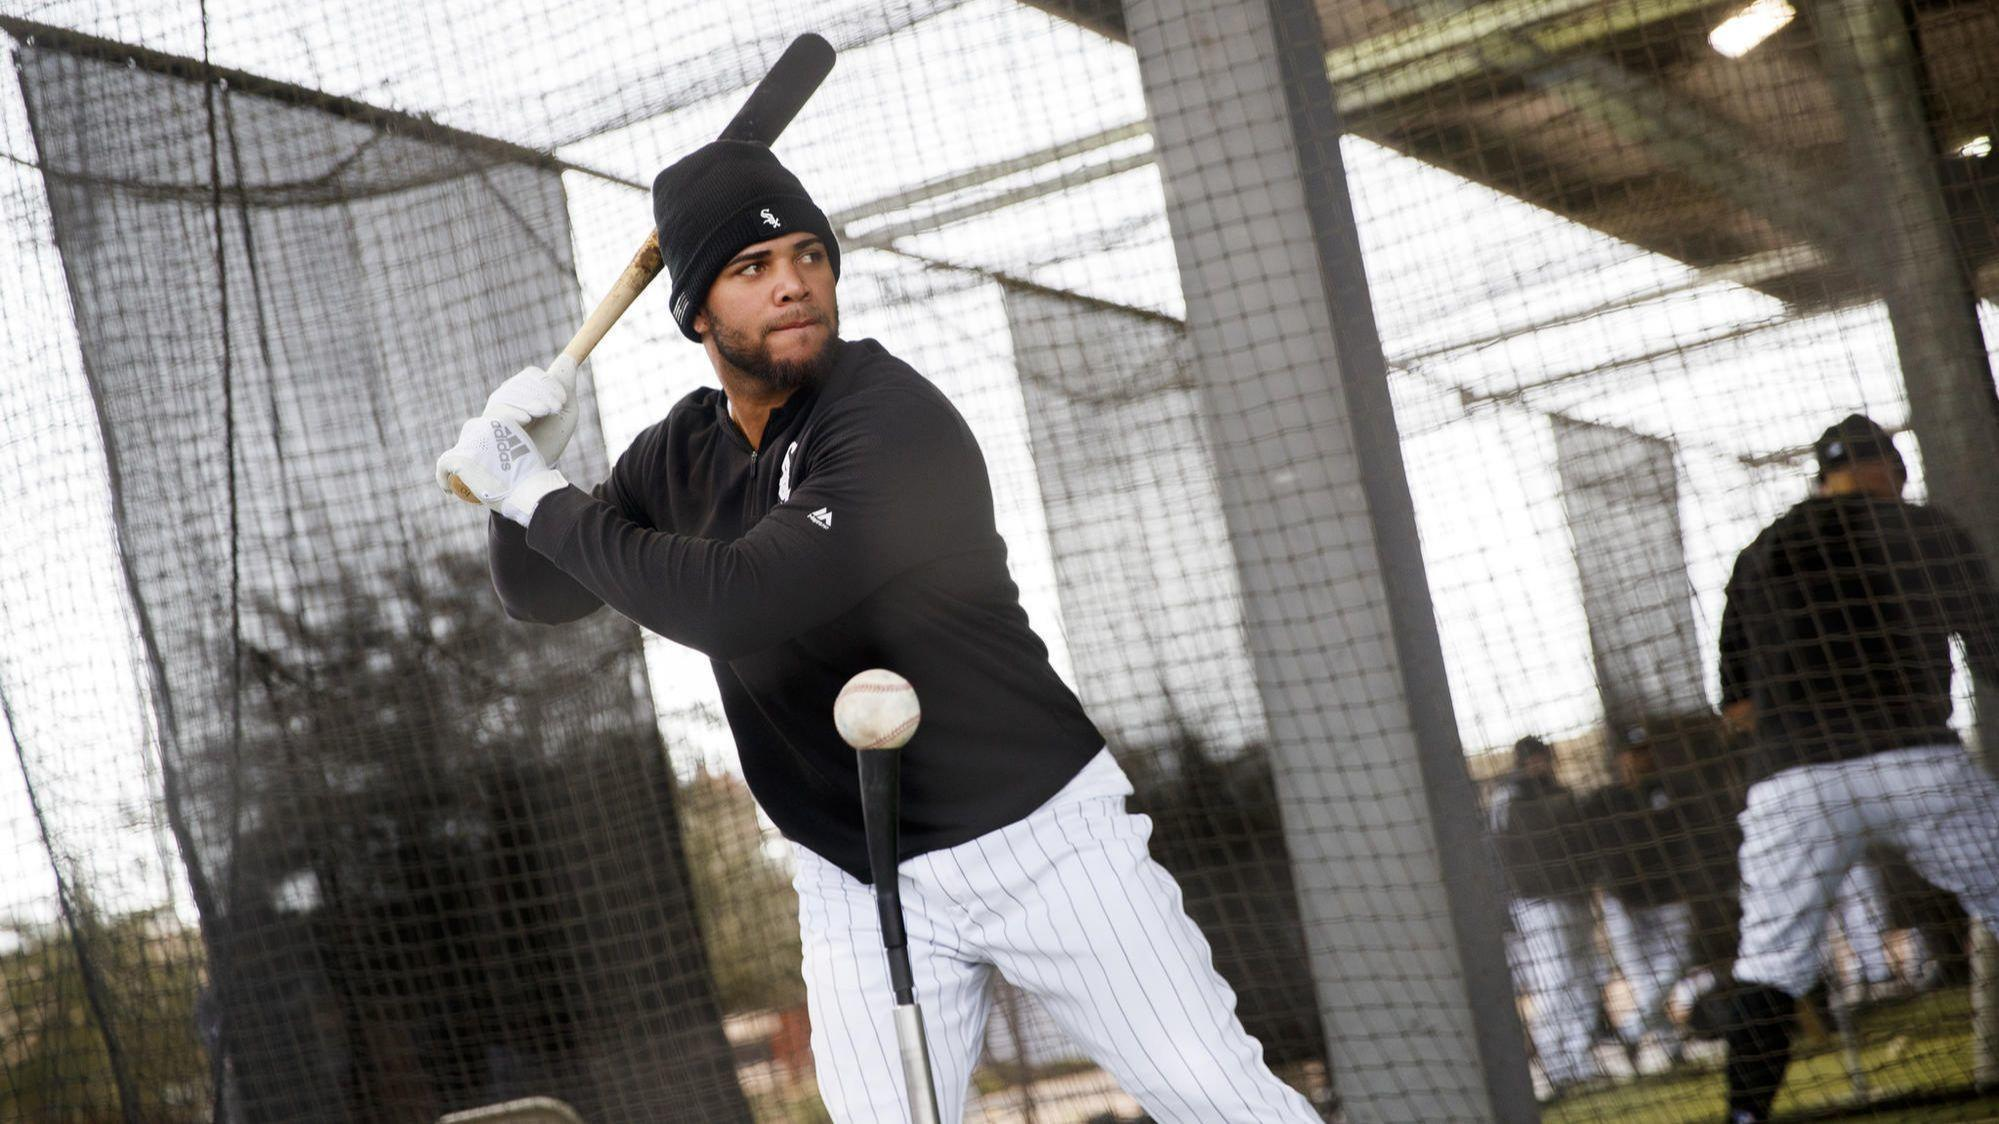 Yoan Moncada begins transition to third base in White Sox's Cactus League opener vs. A's